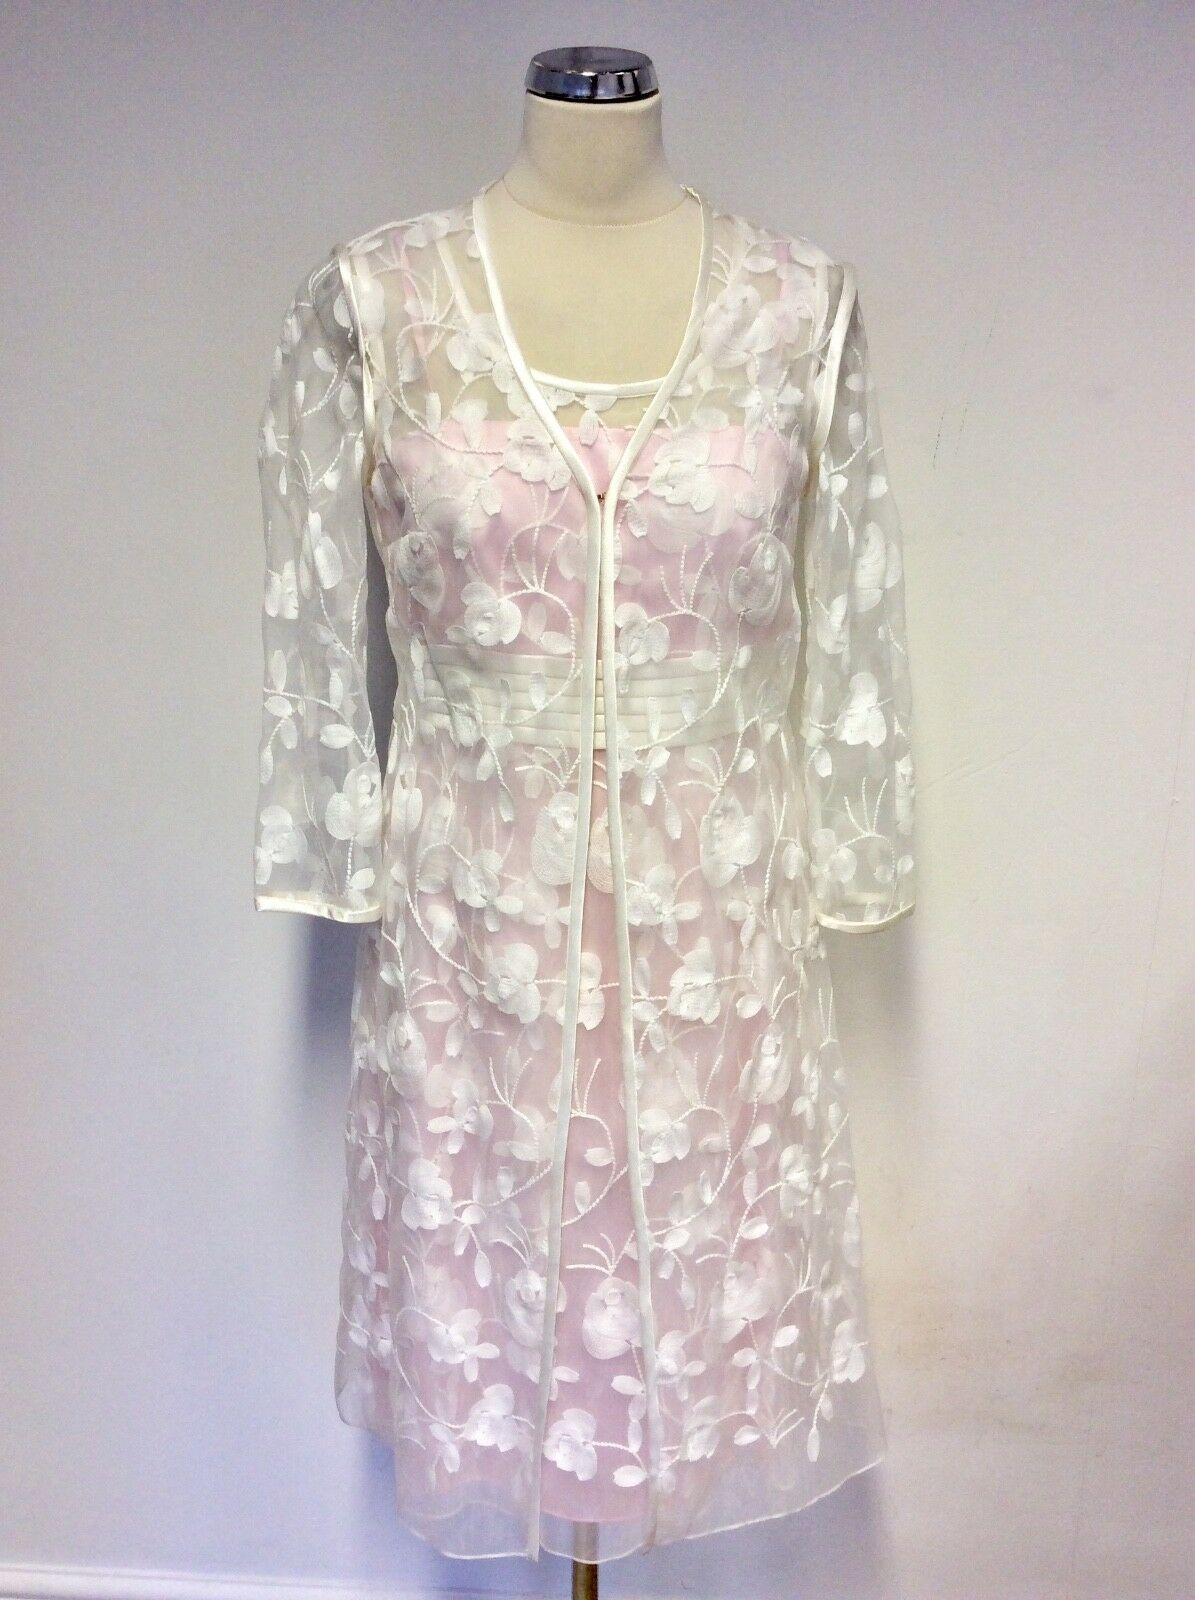 BNWT DRESS CODE BY VEROMIA PINK & WHITE DRESS & DUSTER COAT SIZE 18 RRP